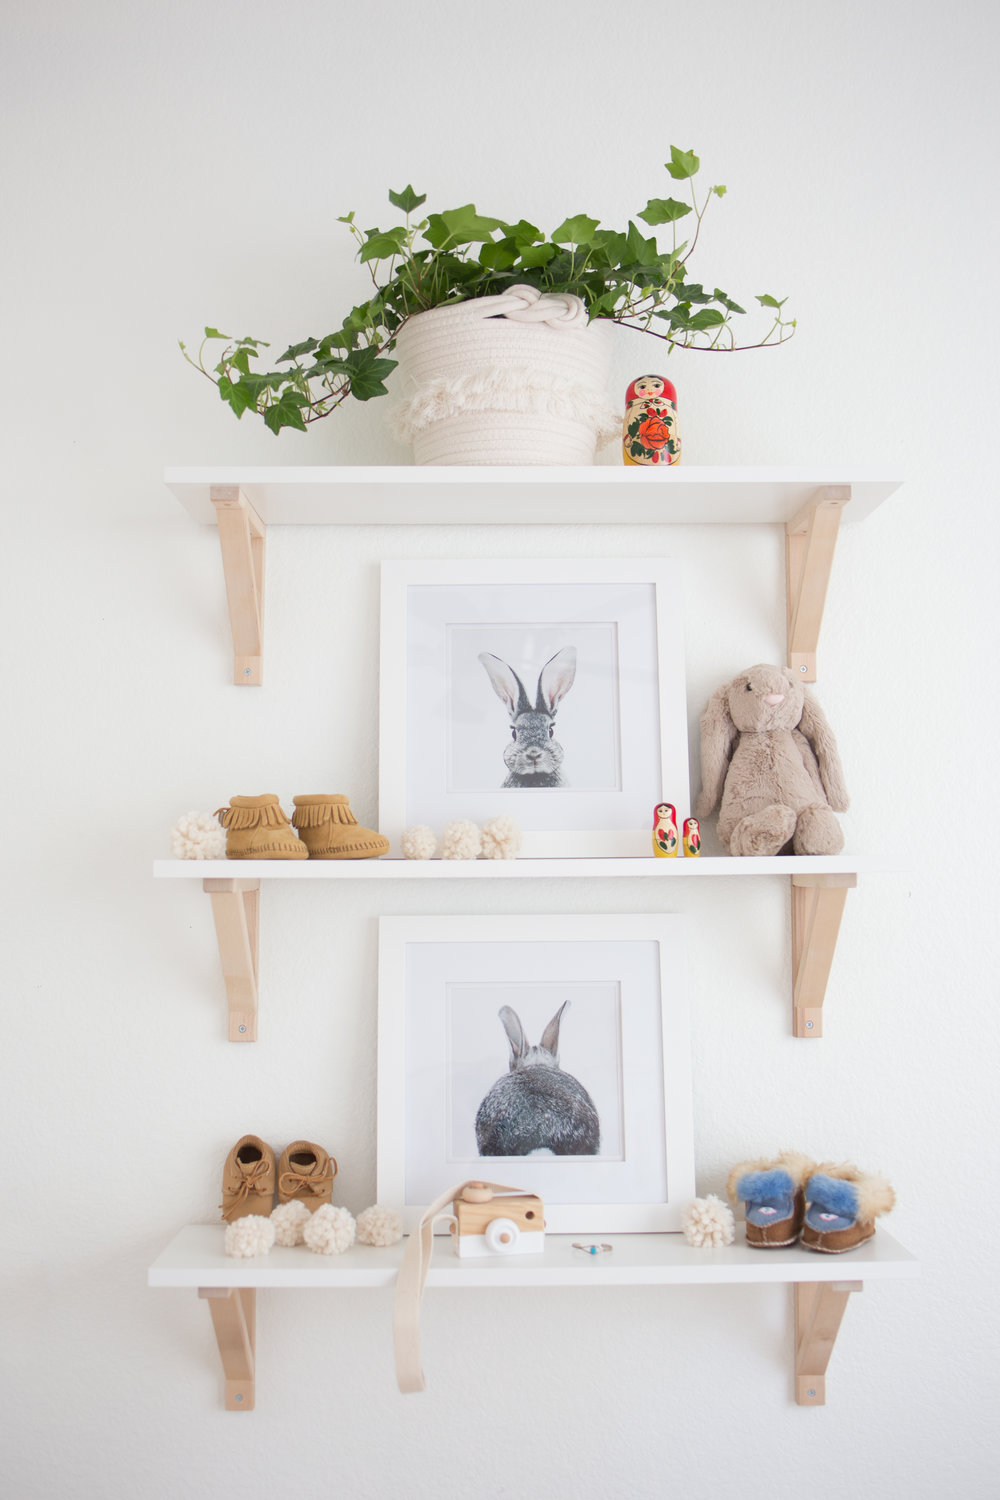 Ikea Ekby Shelf In Nursery with Bunny Boho Decor.jpg